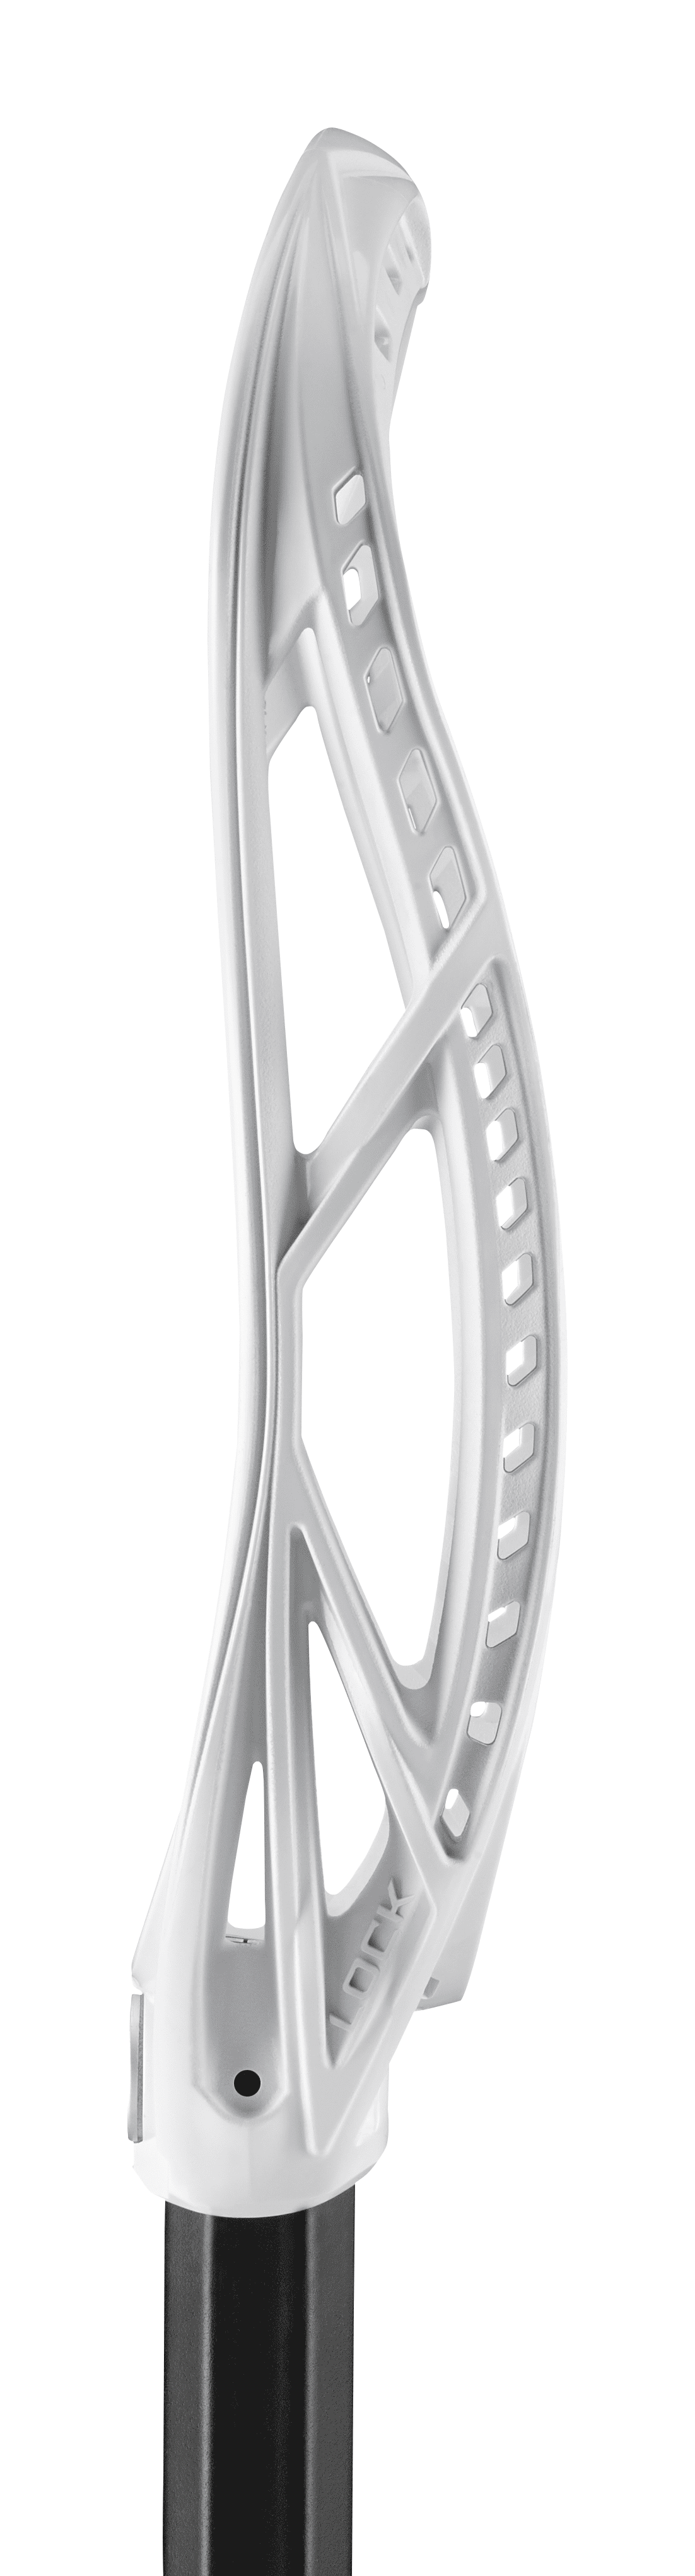 LOCK_HEAD_FACEOFF_WHITE_UNSTRUNG_SIDE-1.png